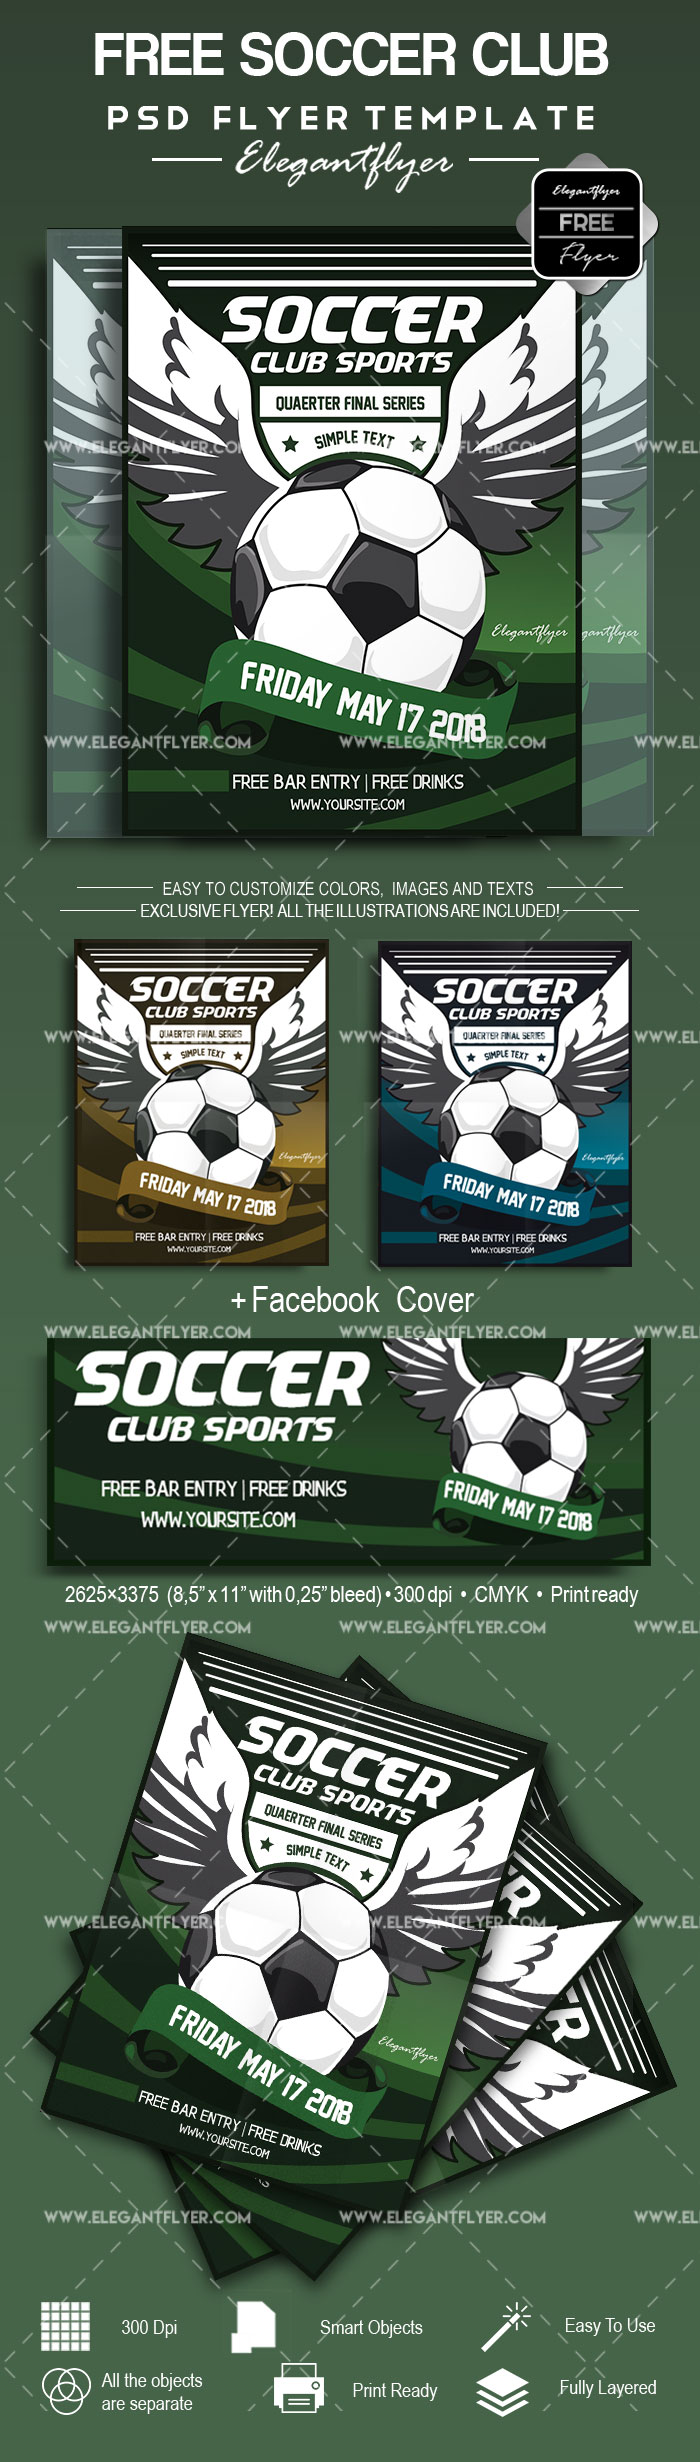 Soccer – Free Flyer PSD Template